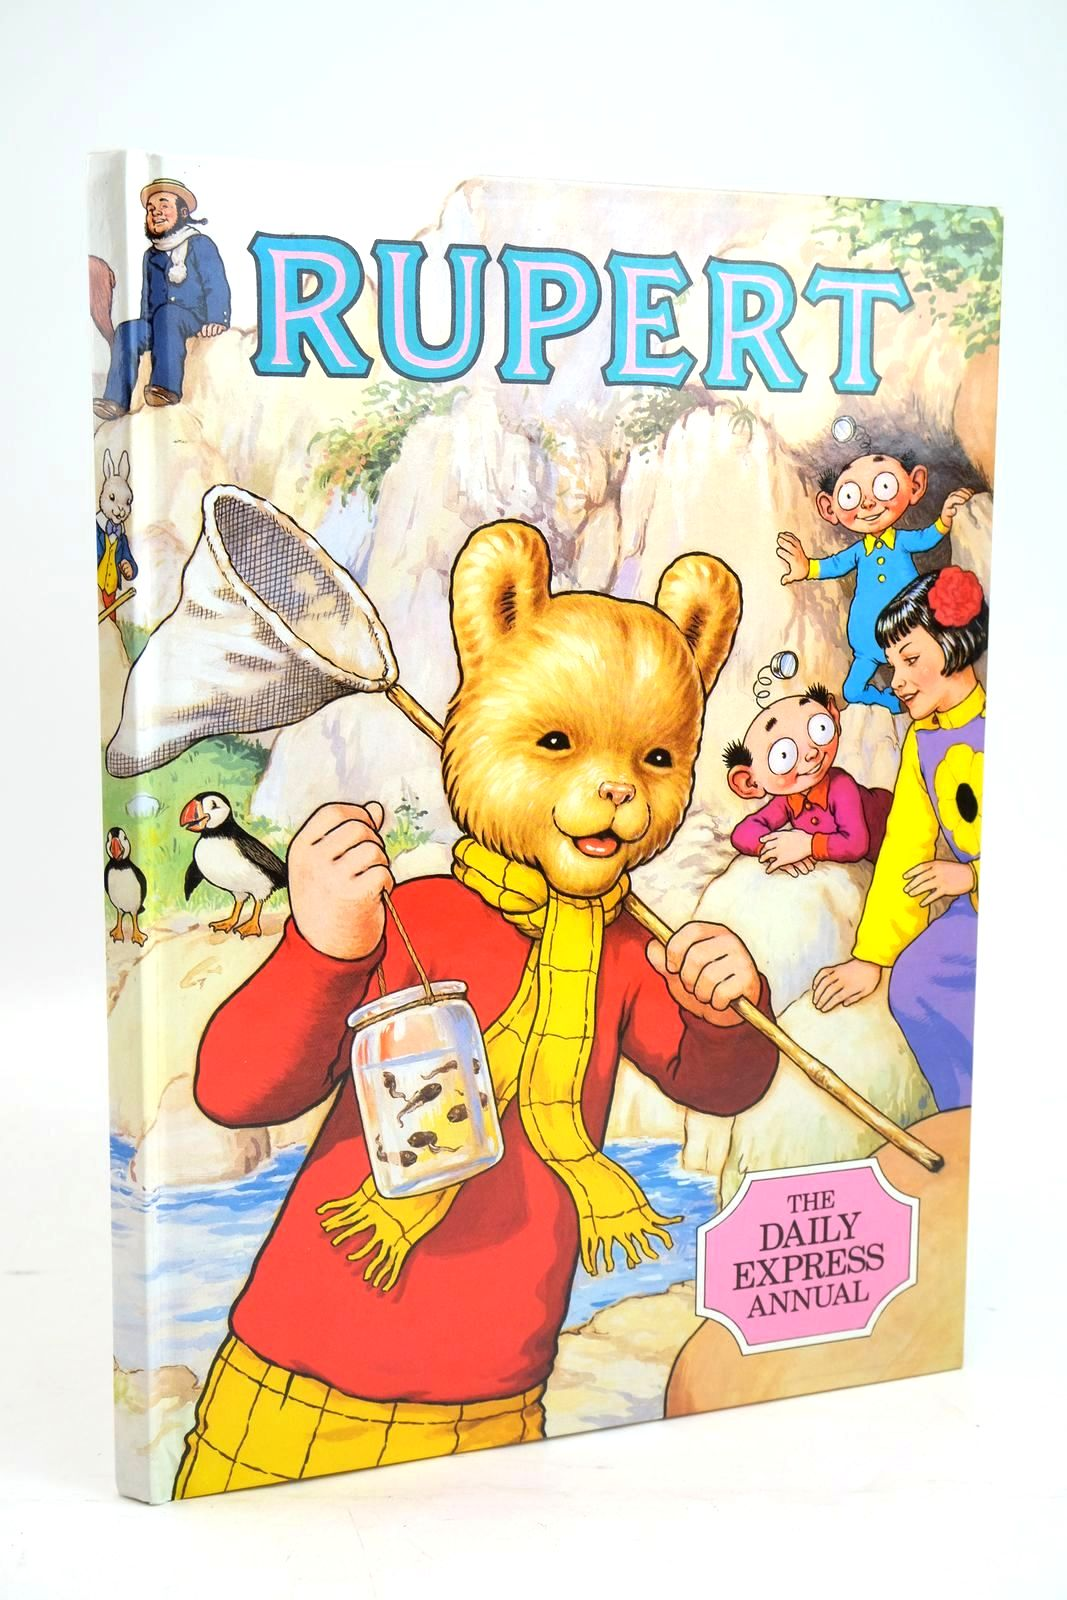 Photo of RUPERT ANNUAL 1986 illustrated by Harrold, John published by Express Newspapers Ltd. (STOCK CODE: 1319647)  for sale by Stella & Rose's Books